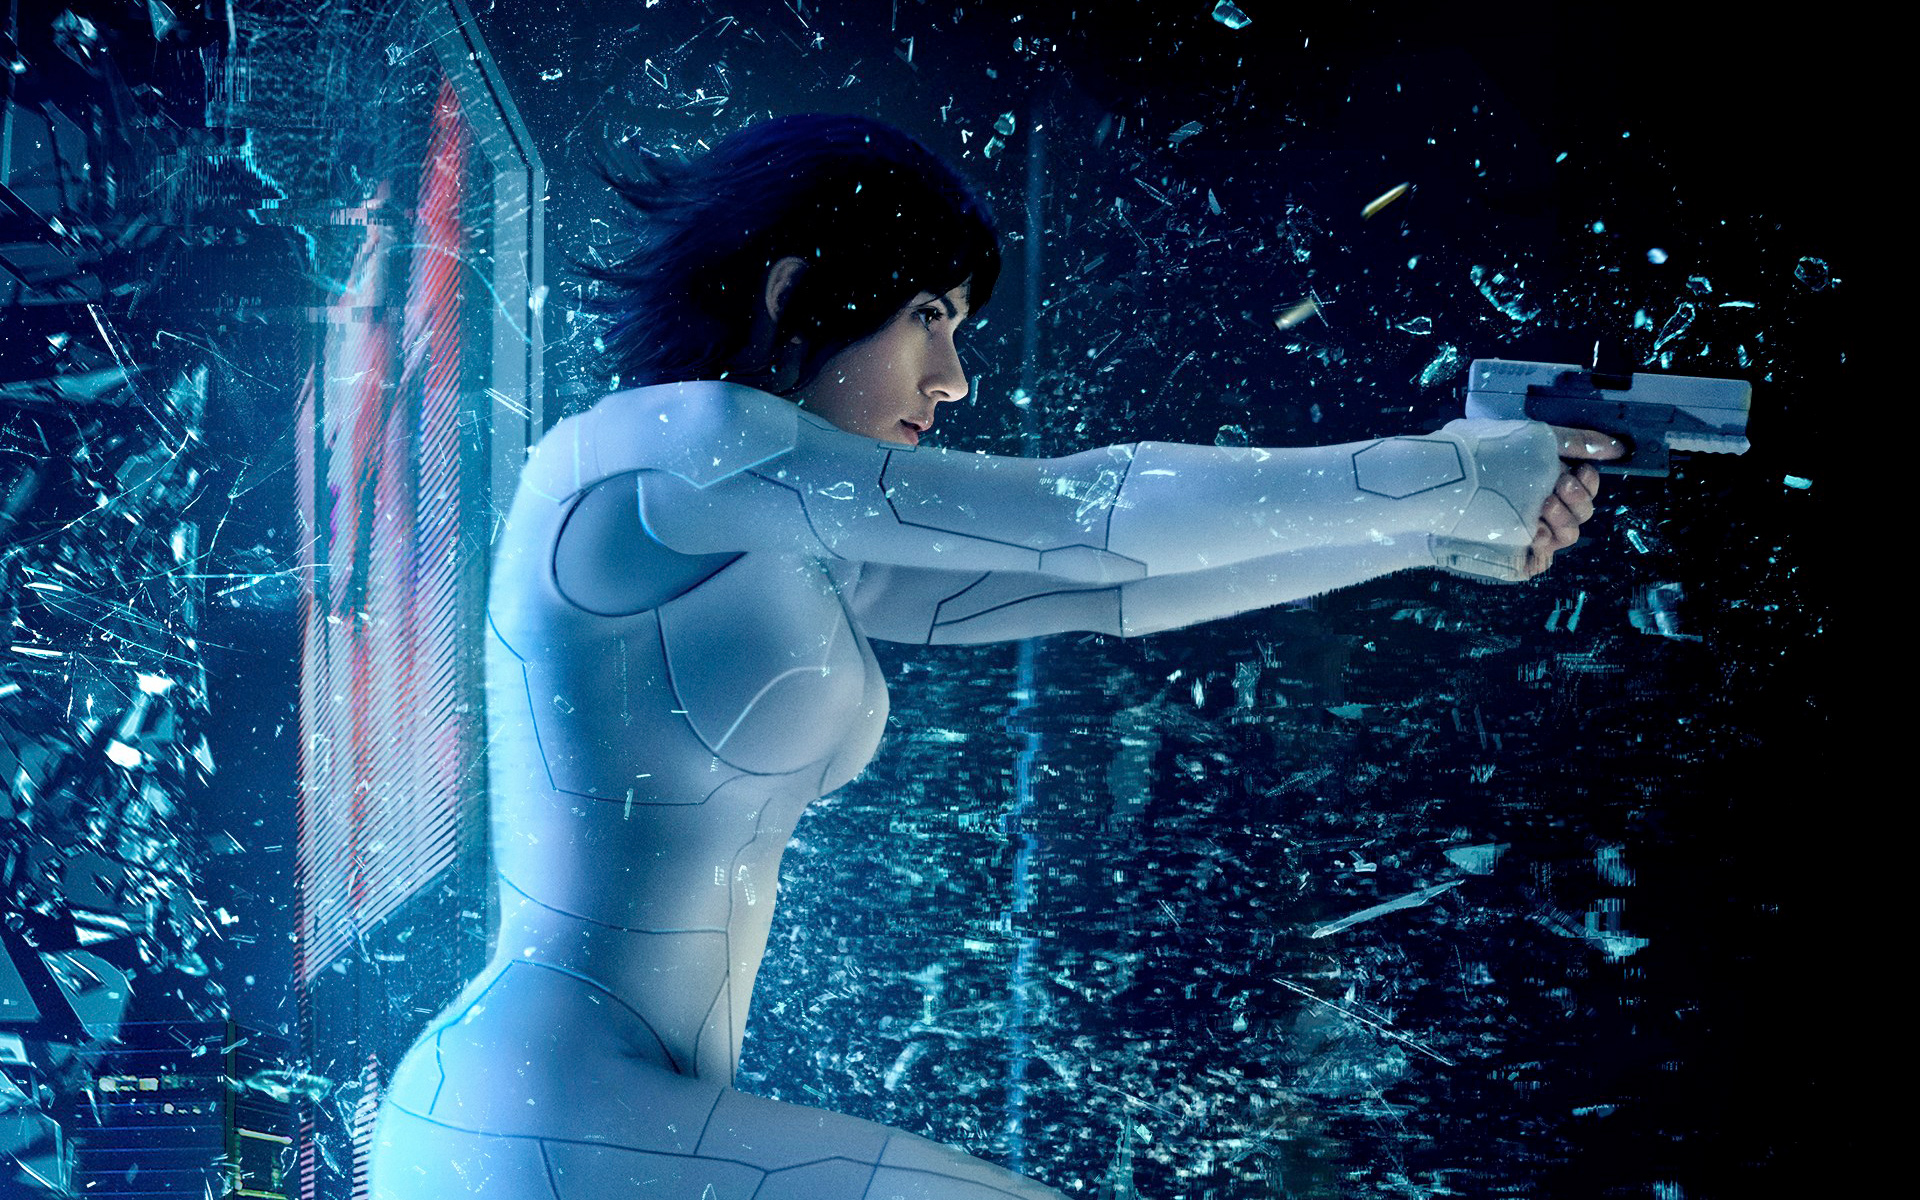 Scarlett Johansson Ghost In The Shell Wallpapers Hd Wallpapers